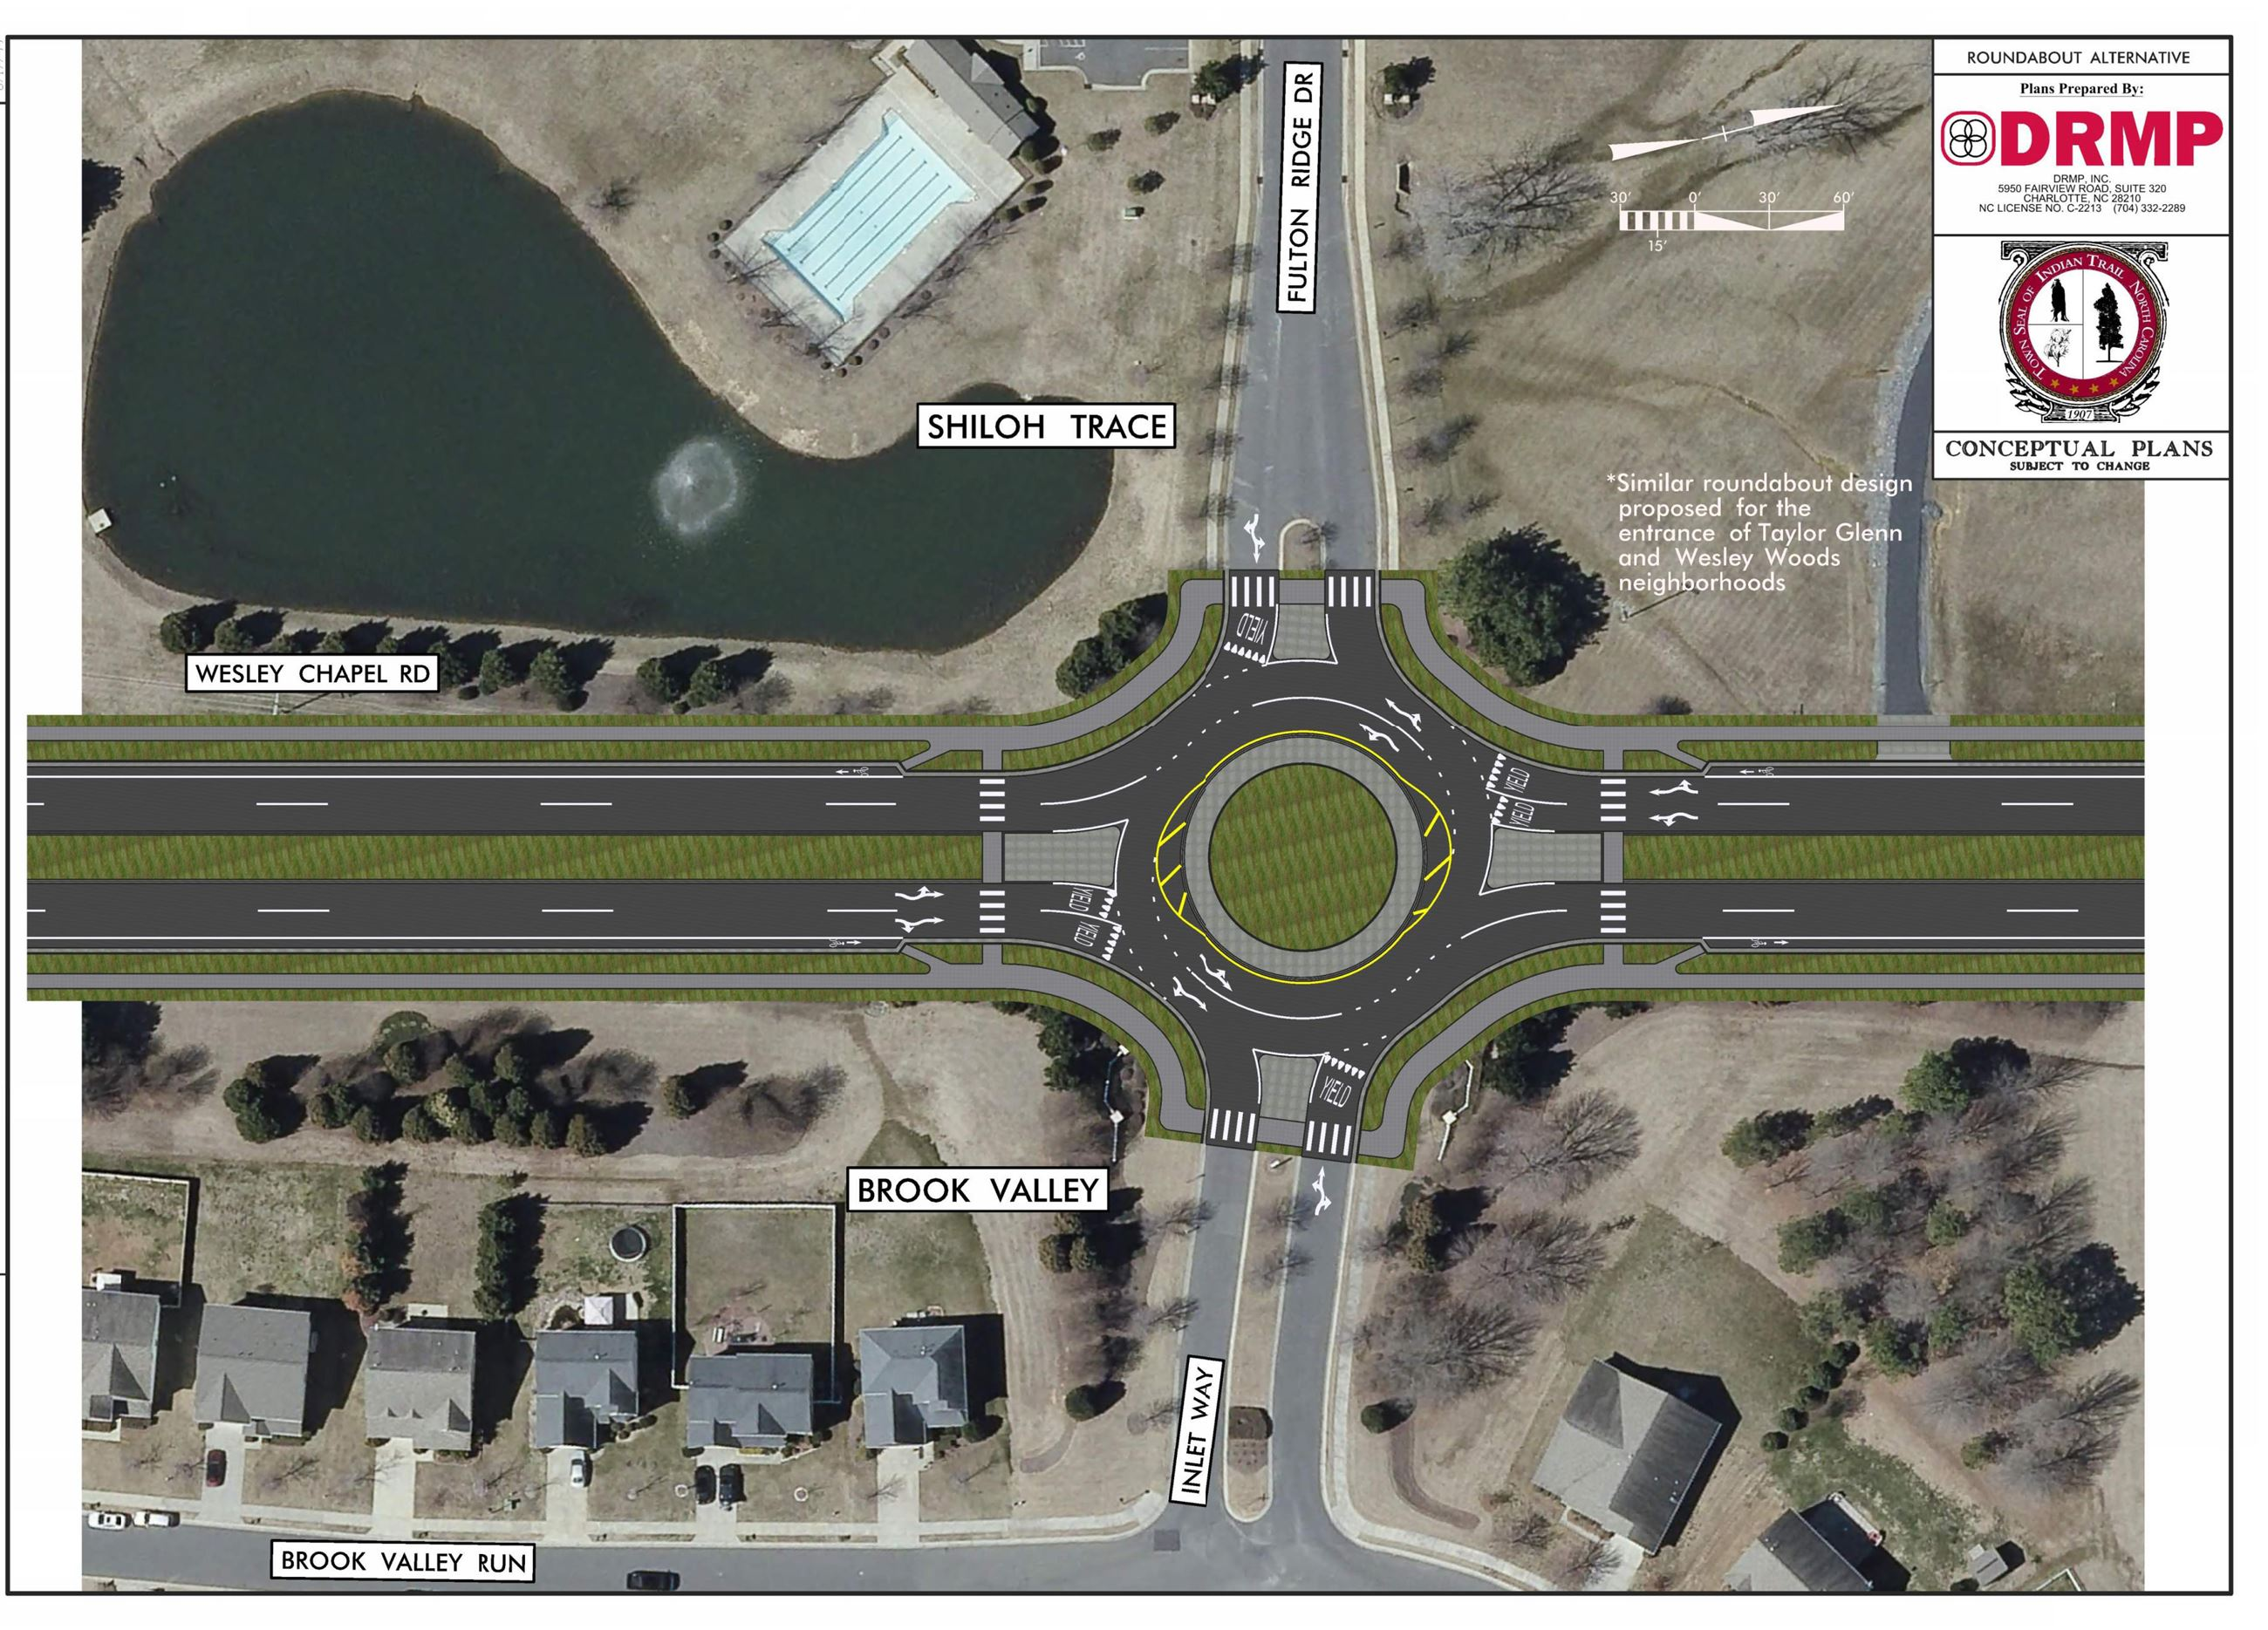 Wesley Chapel Road potential roundabout